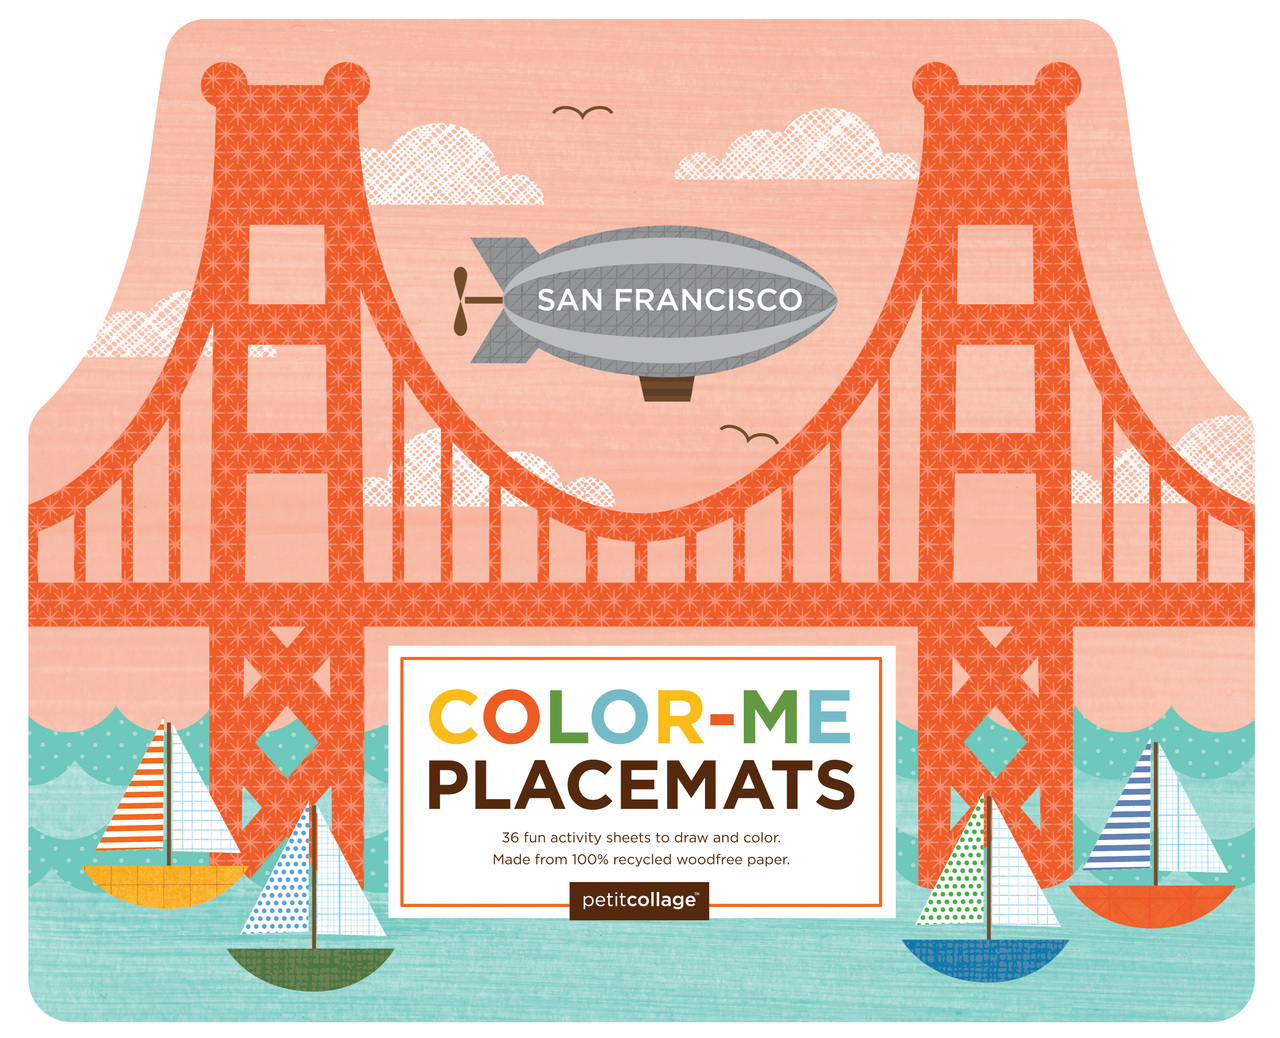 Petit Collage San Francisco Color-Me Placemats